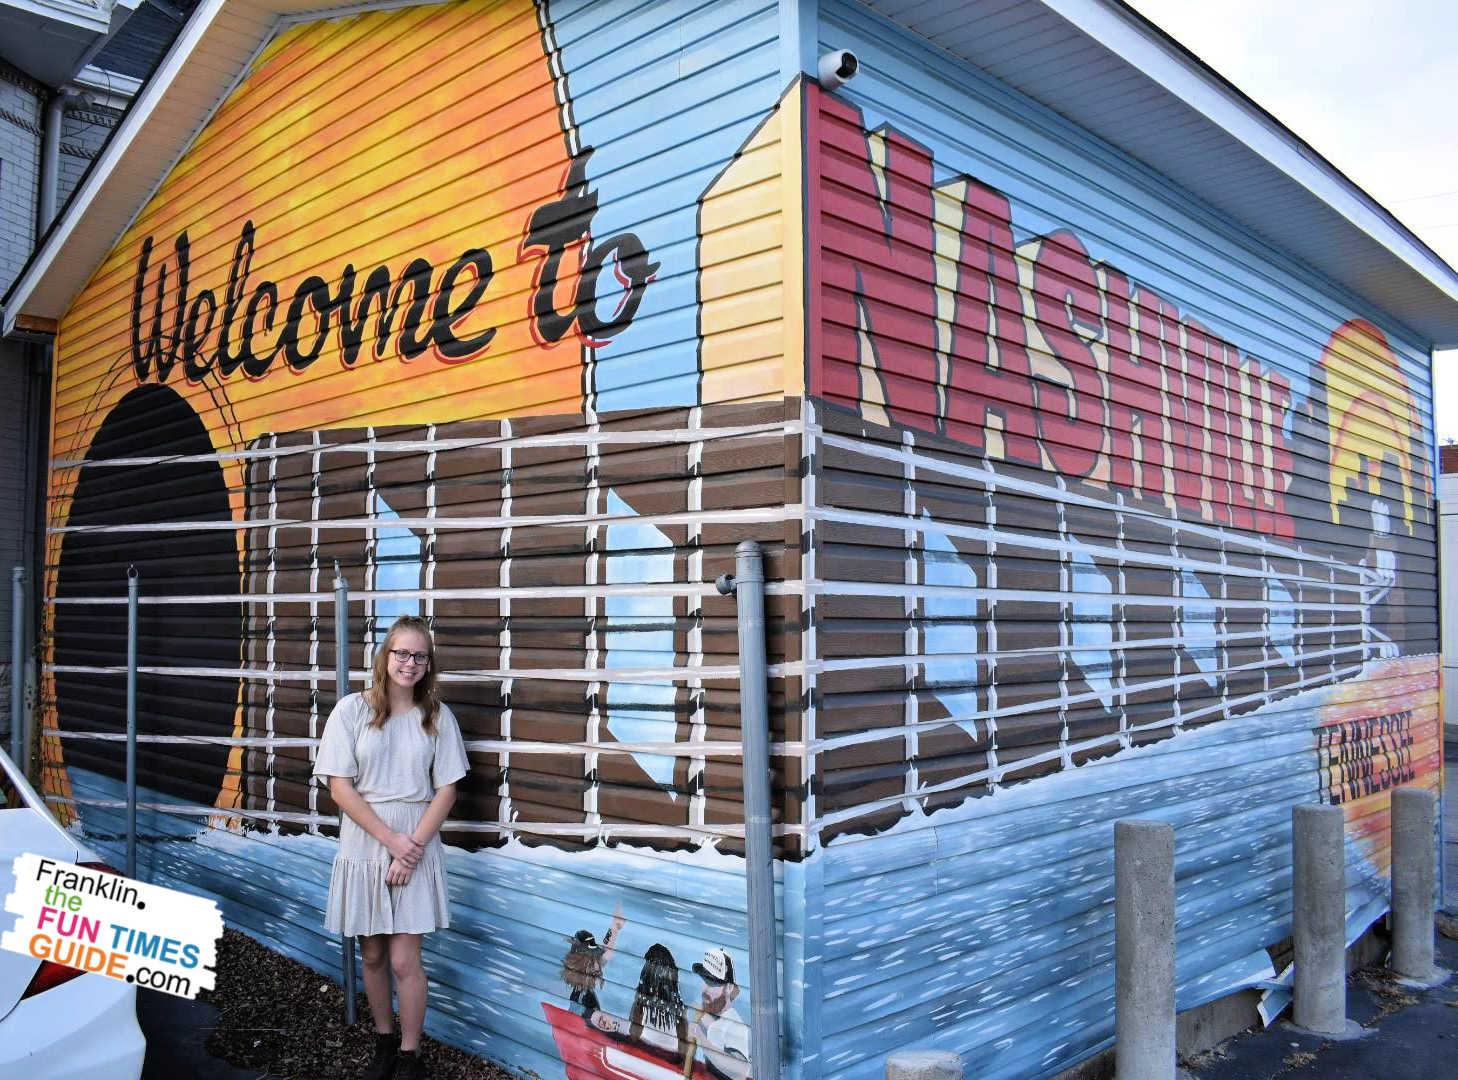 What a blast walking (or driving) all around town to get fun photos in front of all the Nashville murals!